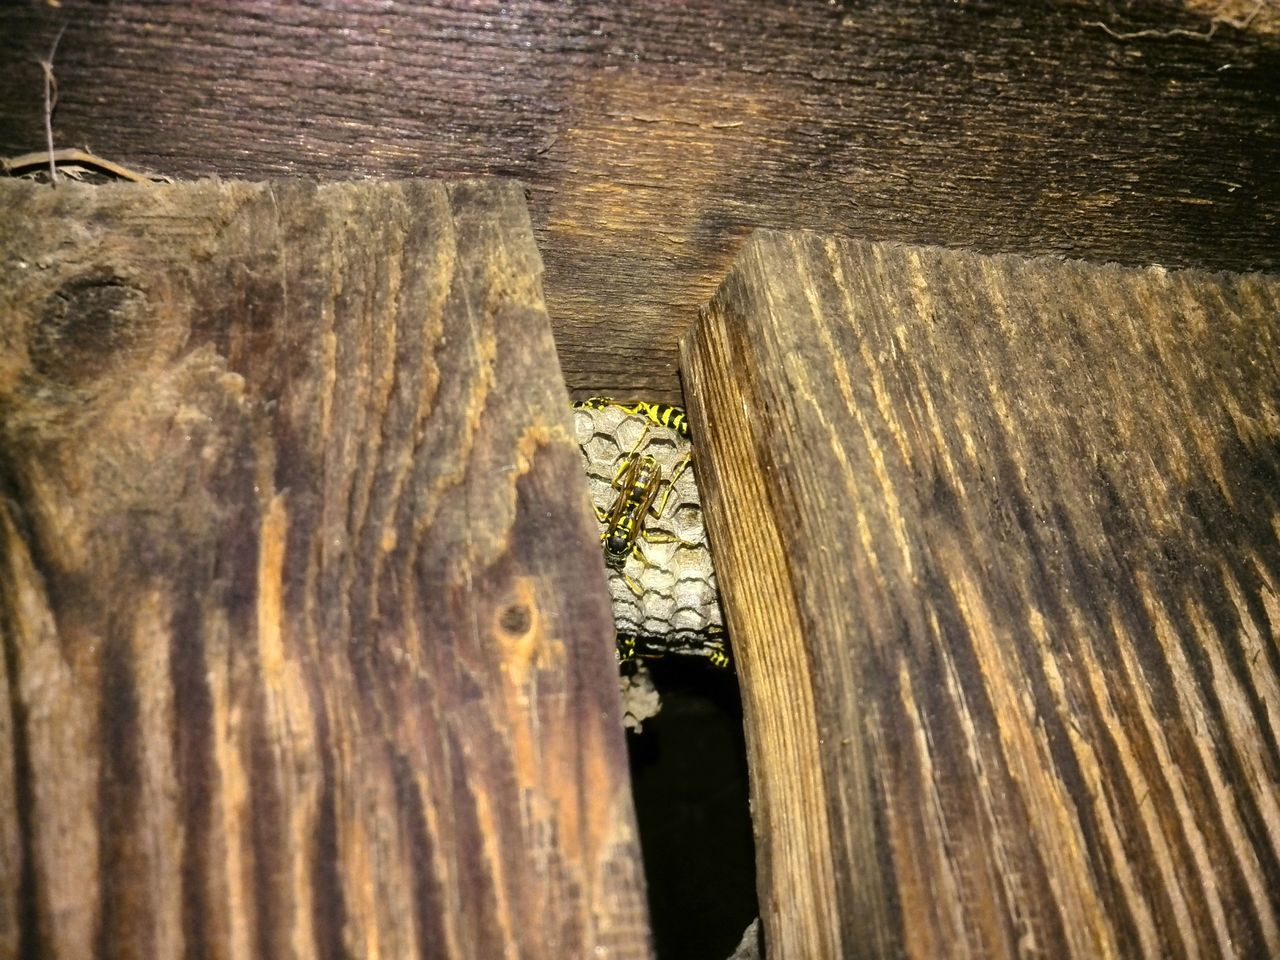 Eekers!!!! Building nest in the hen house walls! Night Night Photography Outdoors Insects  Bees Bee Nest Wasp Wasps Nests Wasps Nest Wood Wood - Material Wood Grain Attention To Detail Patterns In Nature